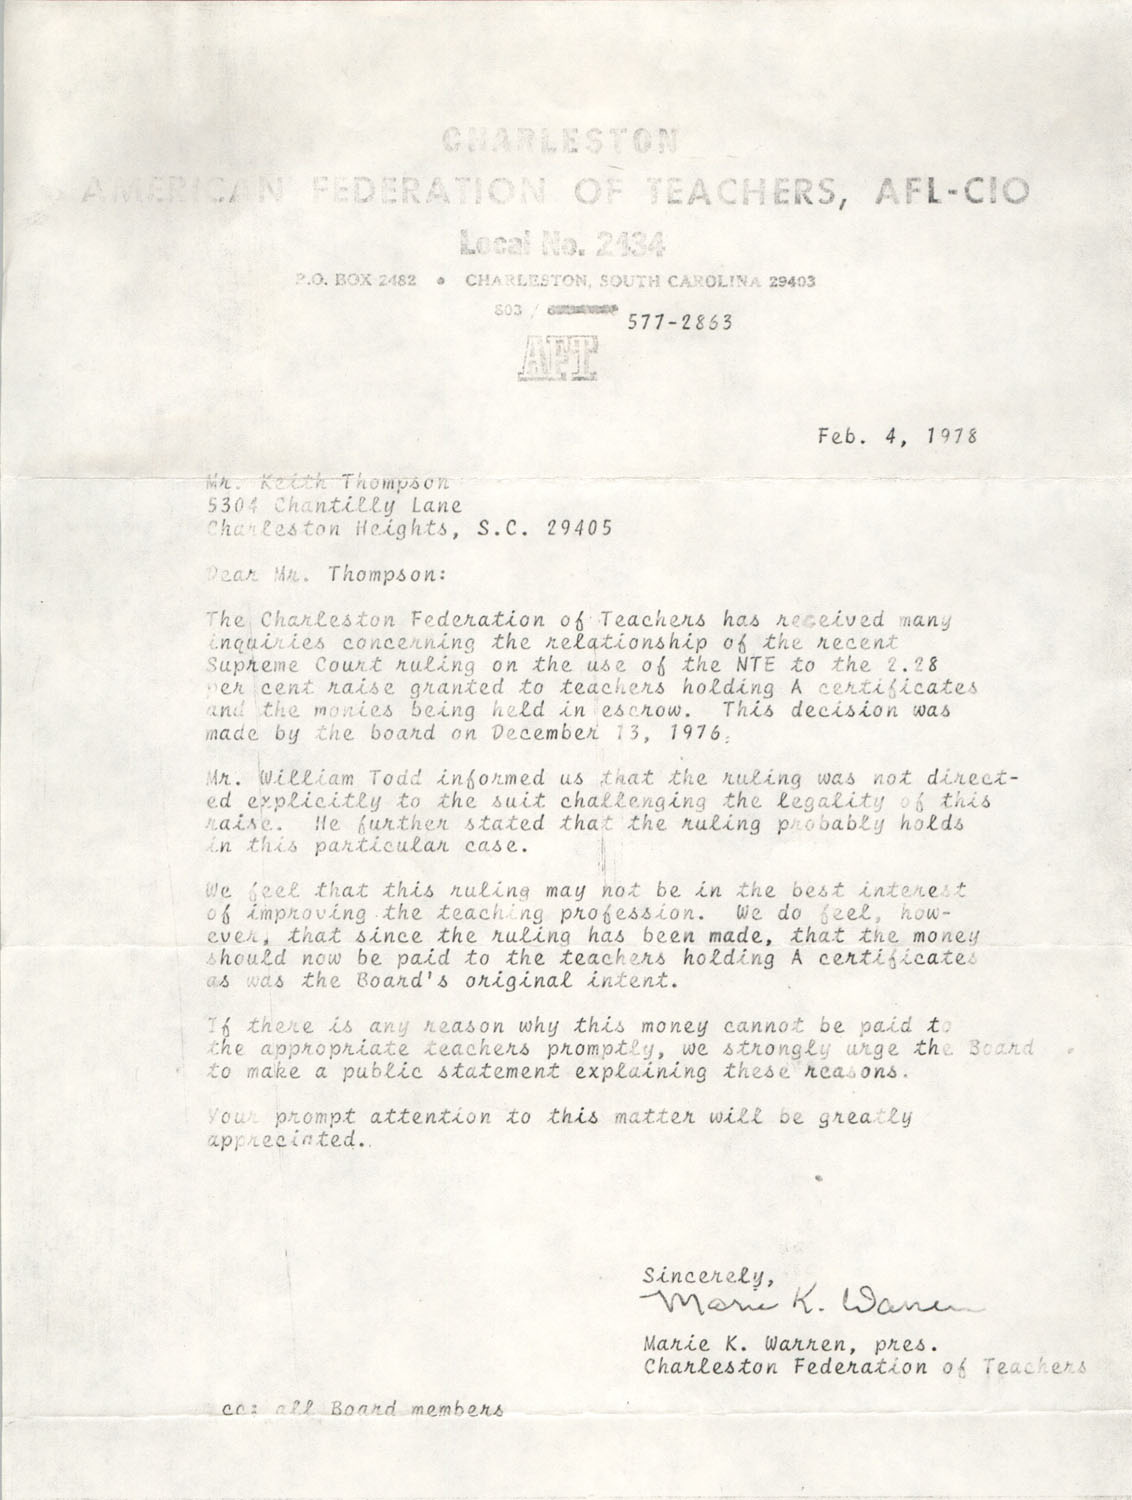 Letter from Marie K. Warren to Keith Thompson, February 4, 1978